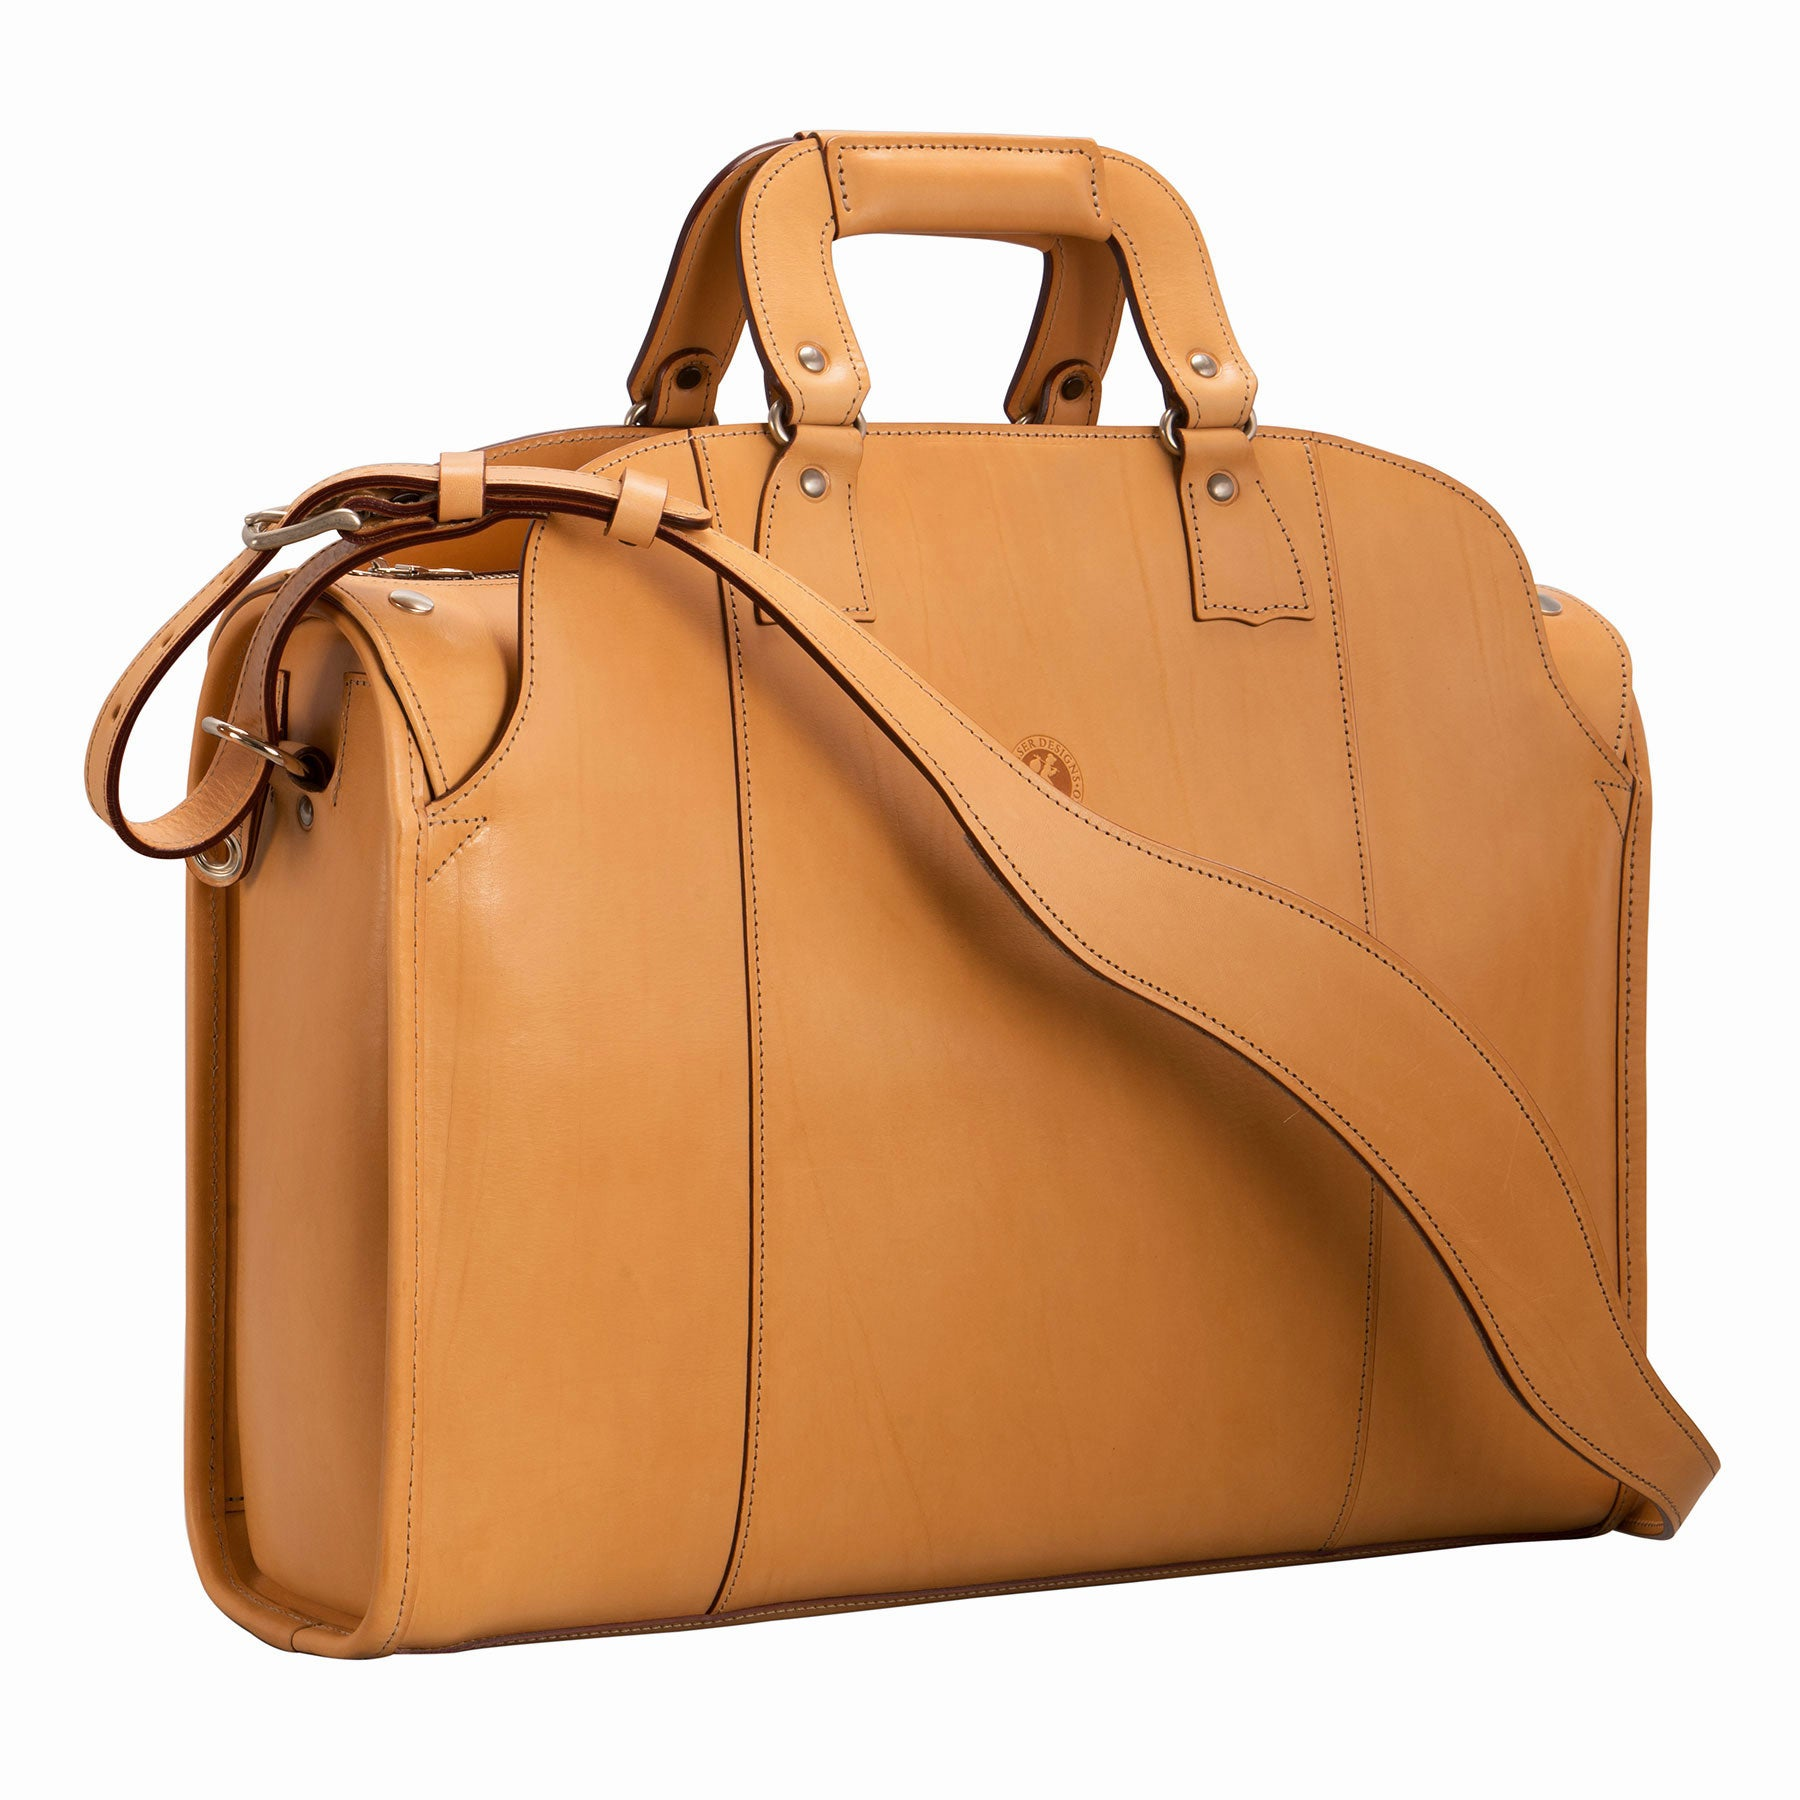 Travelers' Briefcase: hand-burnished leather